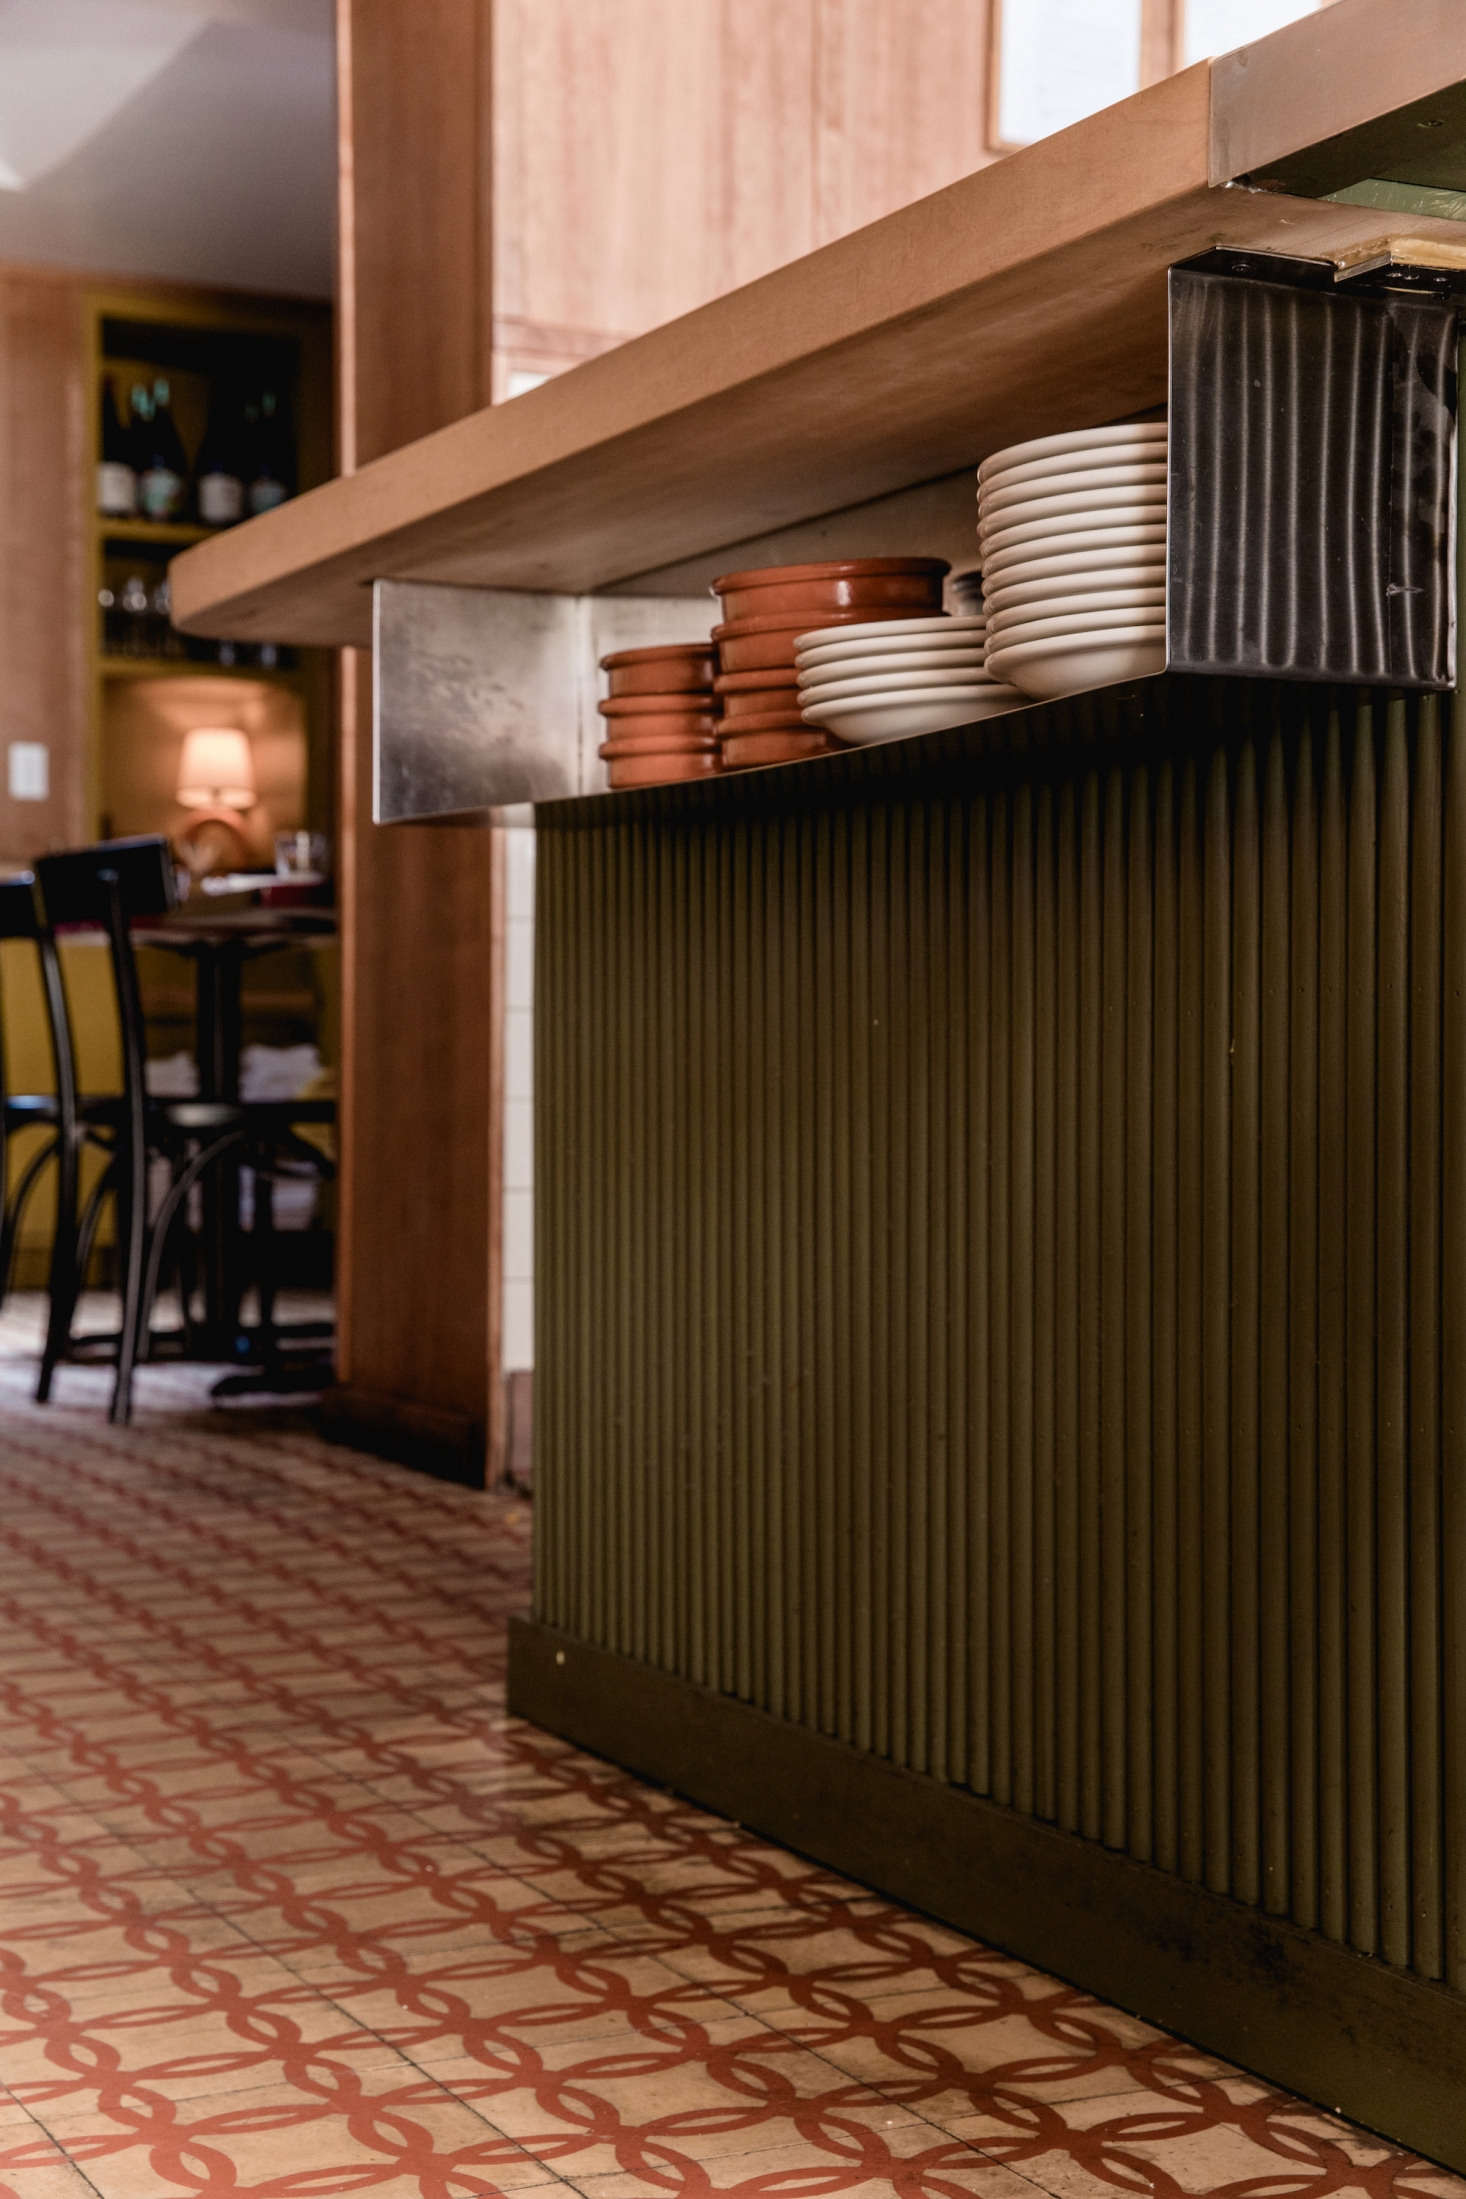 With a tight prep space, the team built storage into easy-to-access places, like this metal shelf that holds serveware underneath the bar